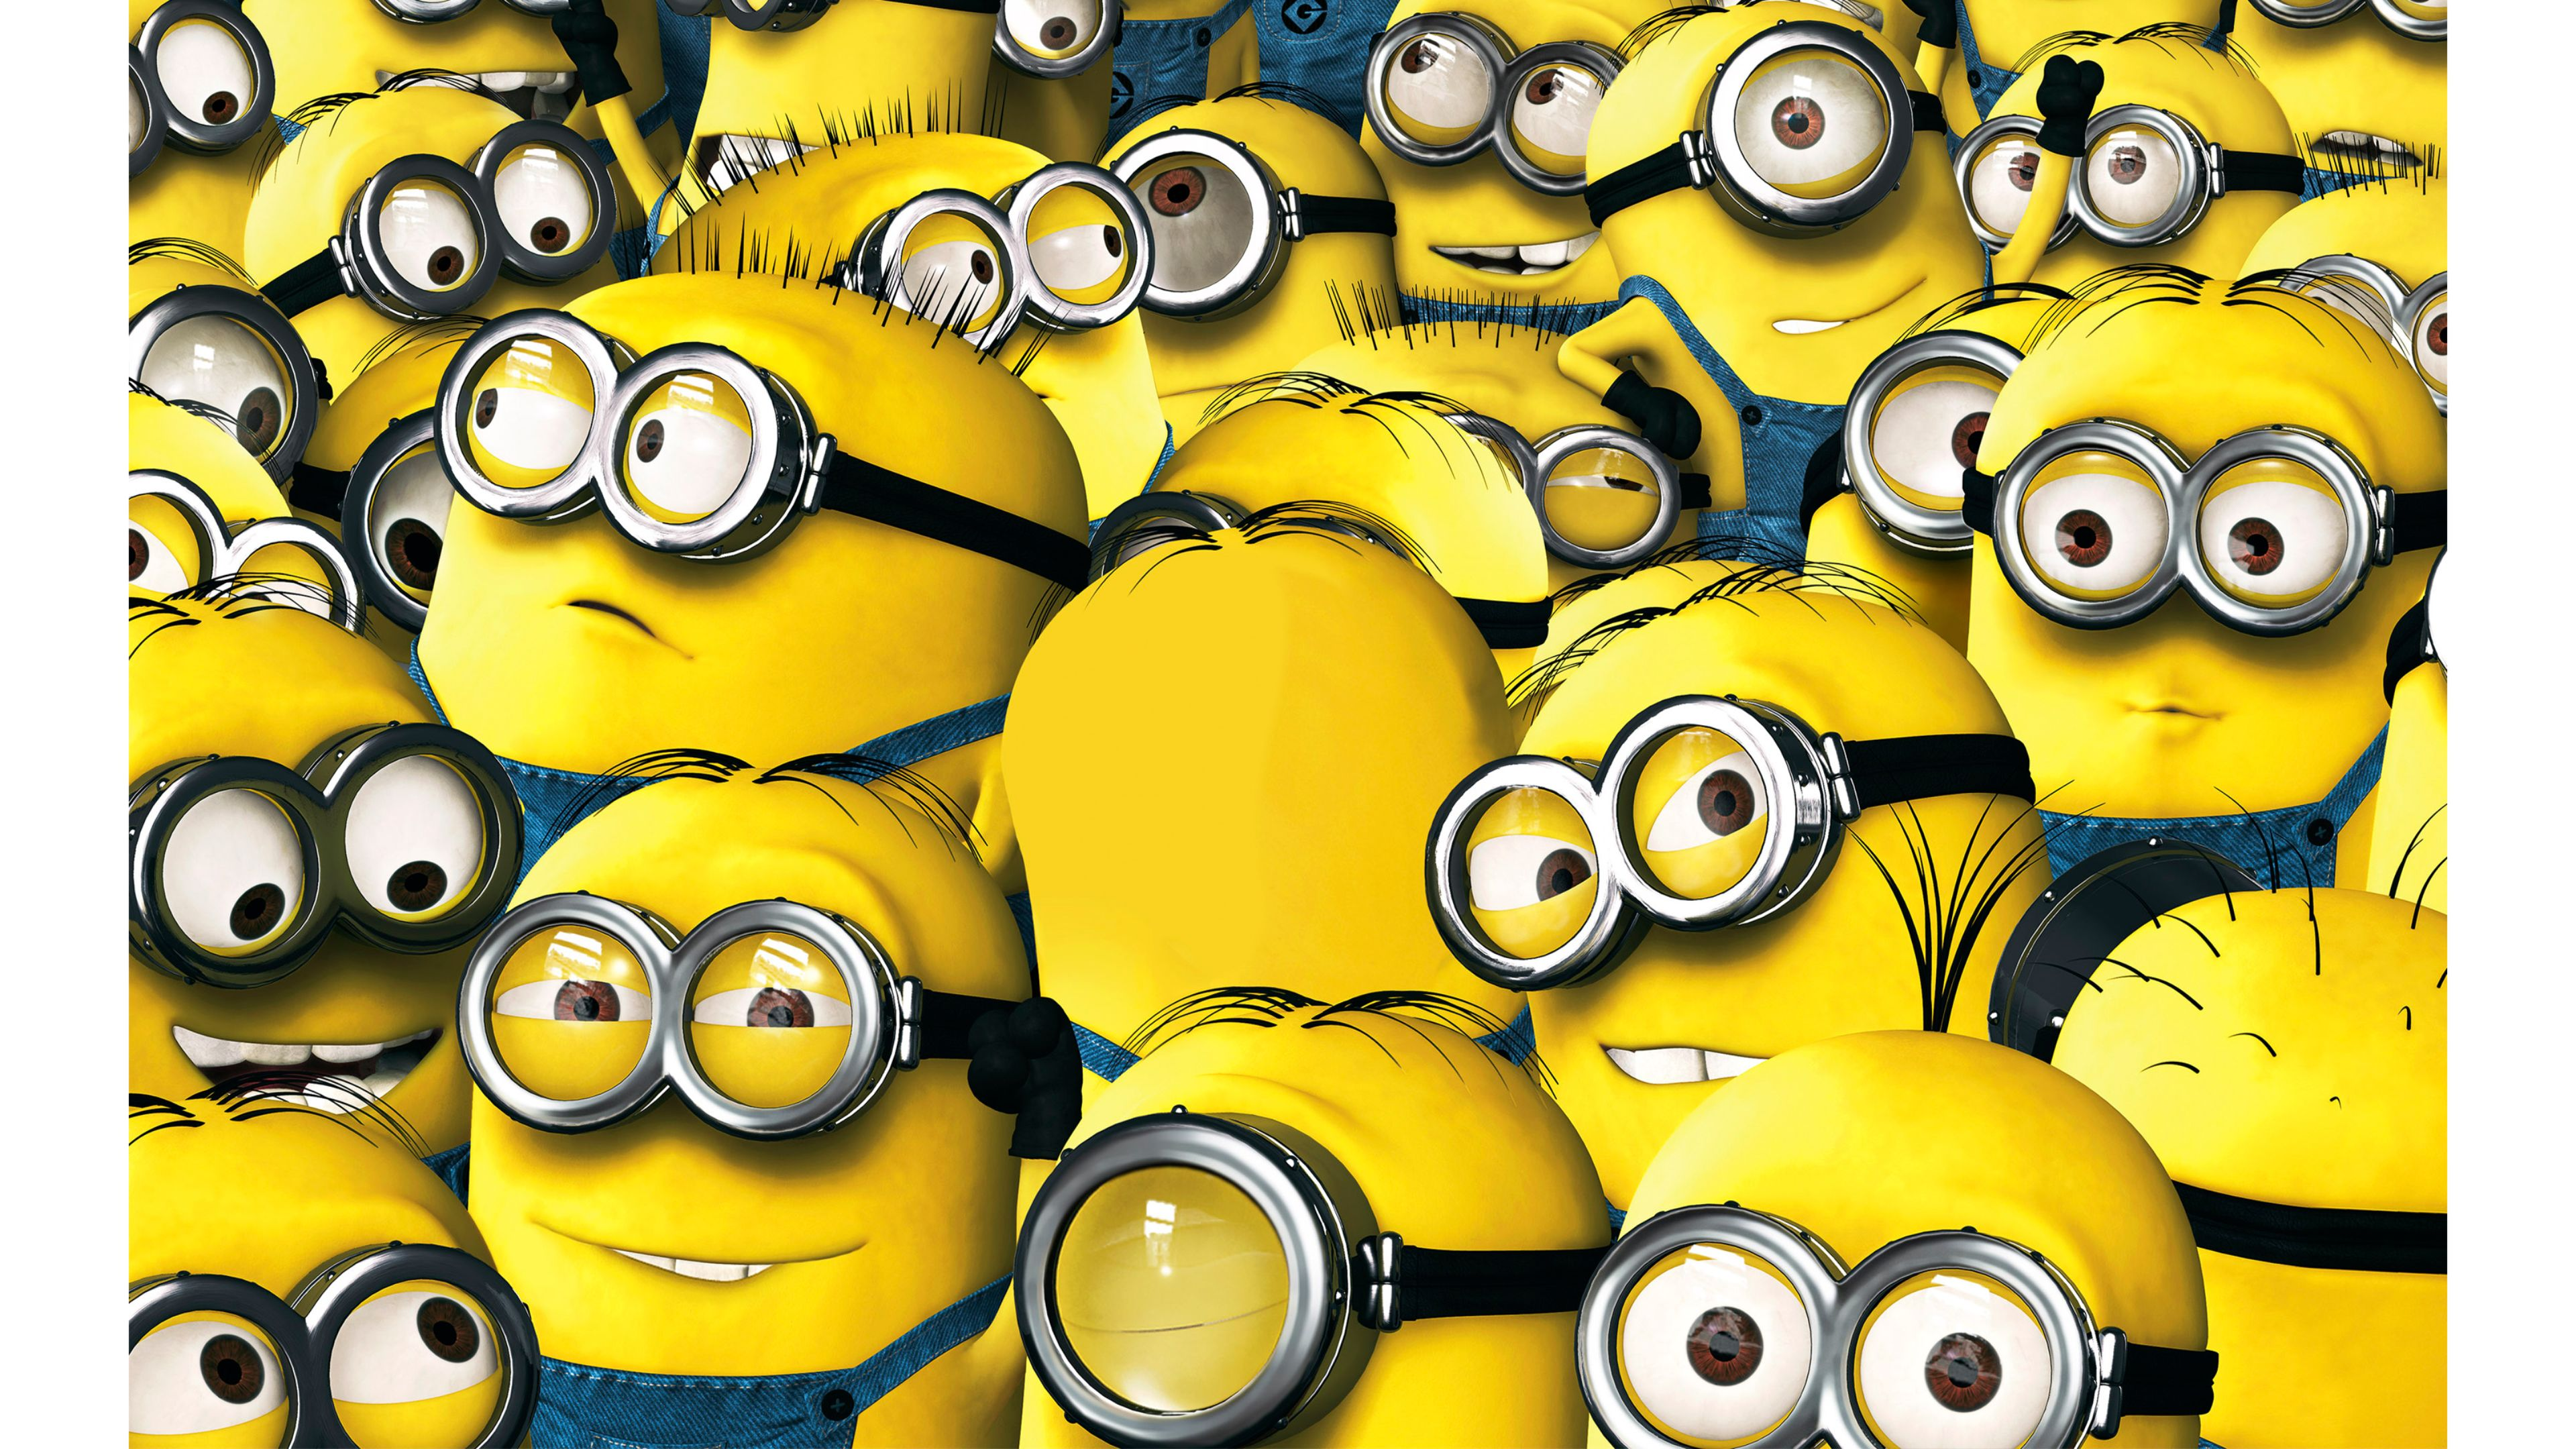 minions 4k wallpapers for